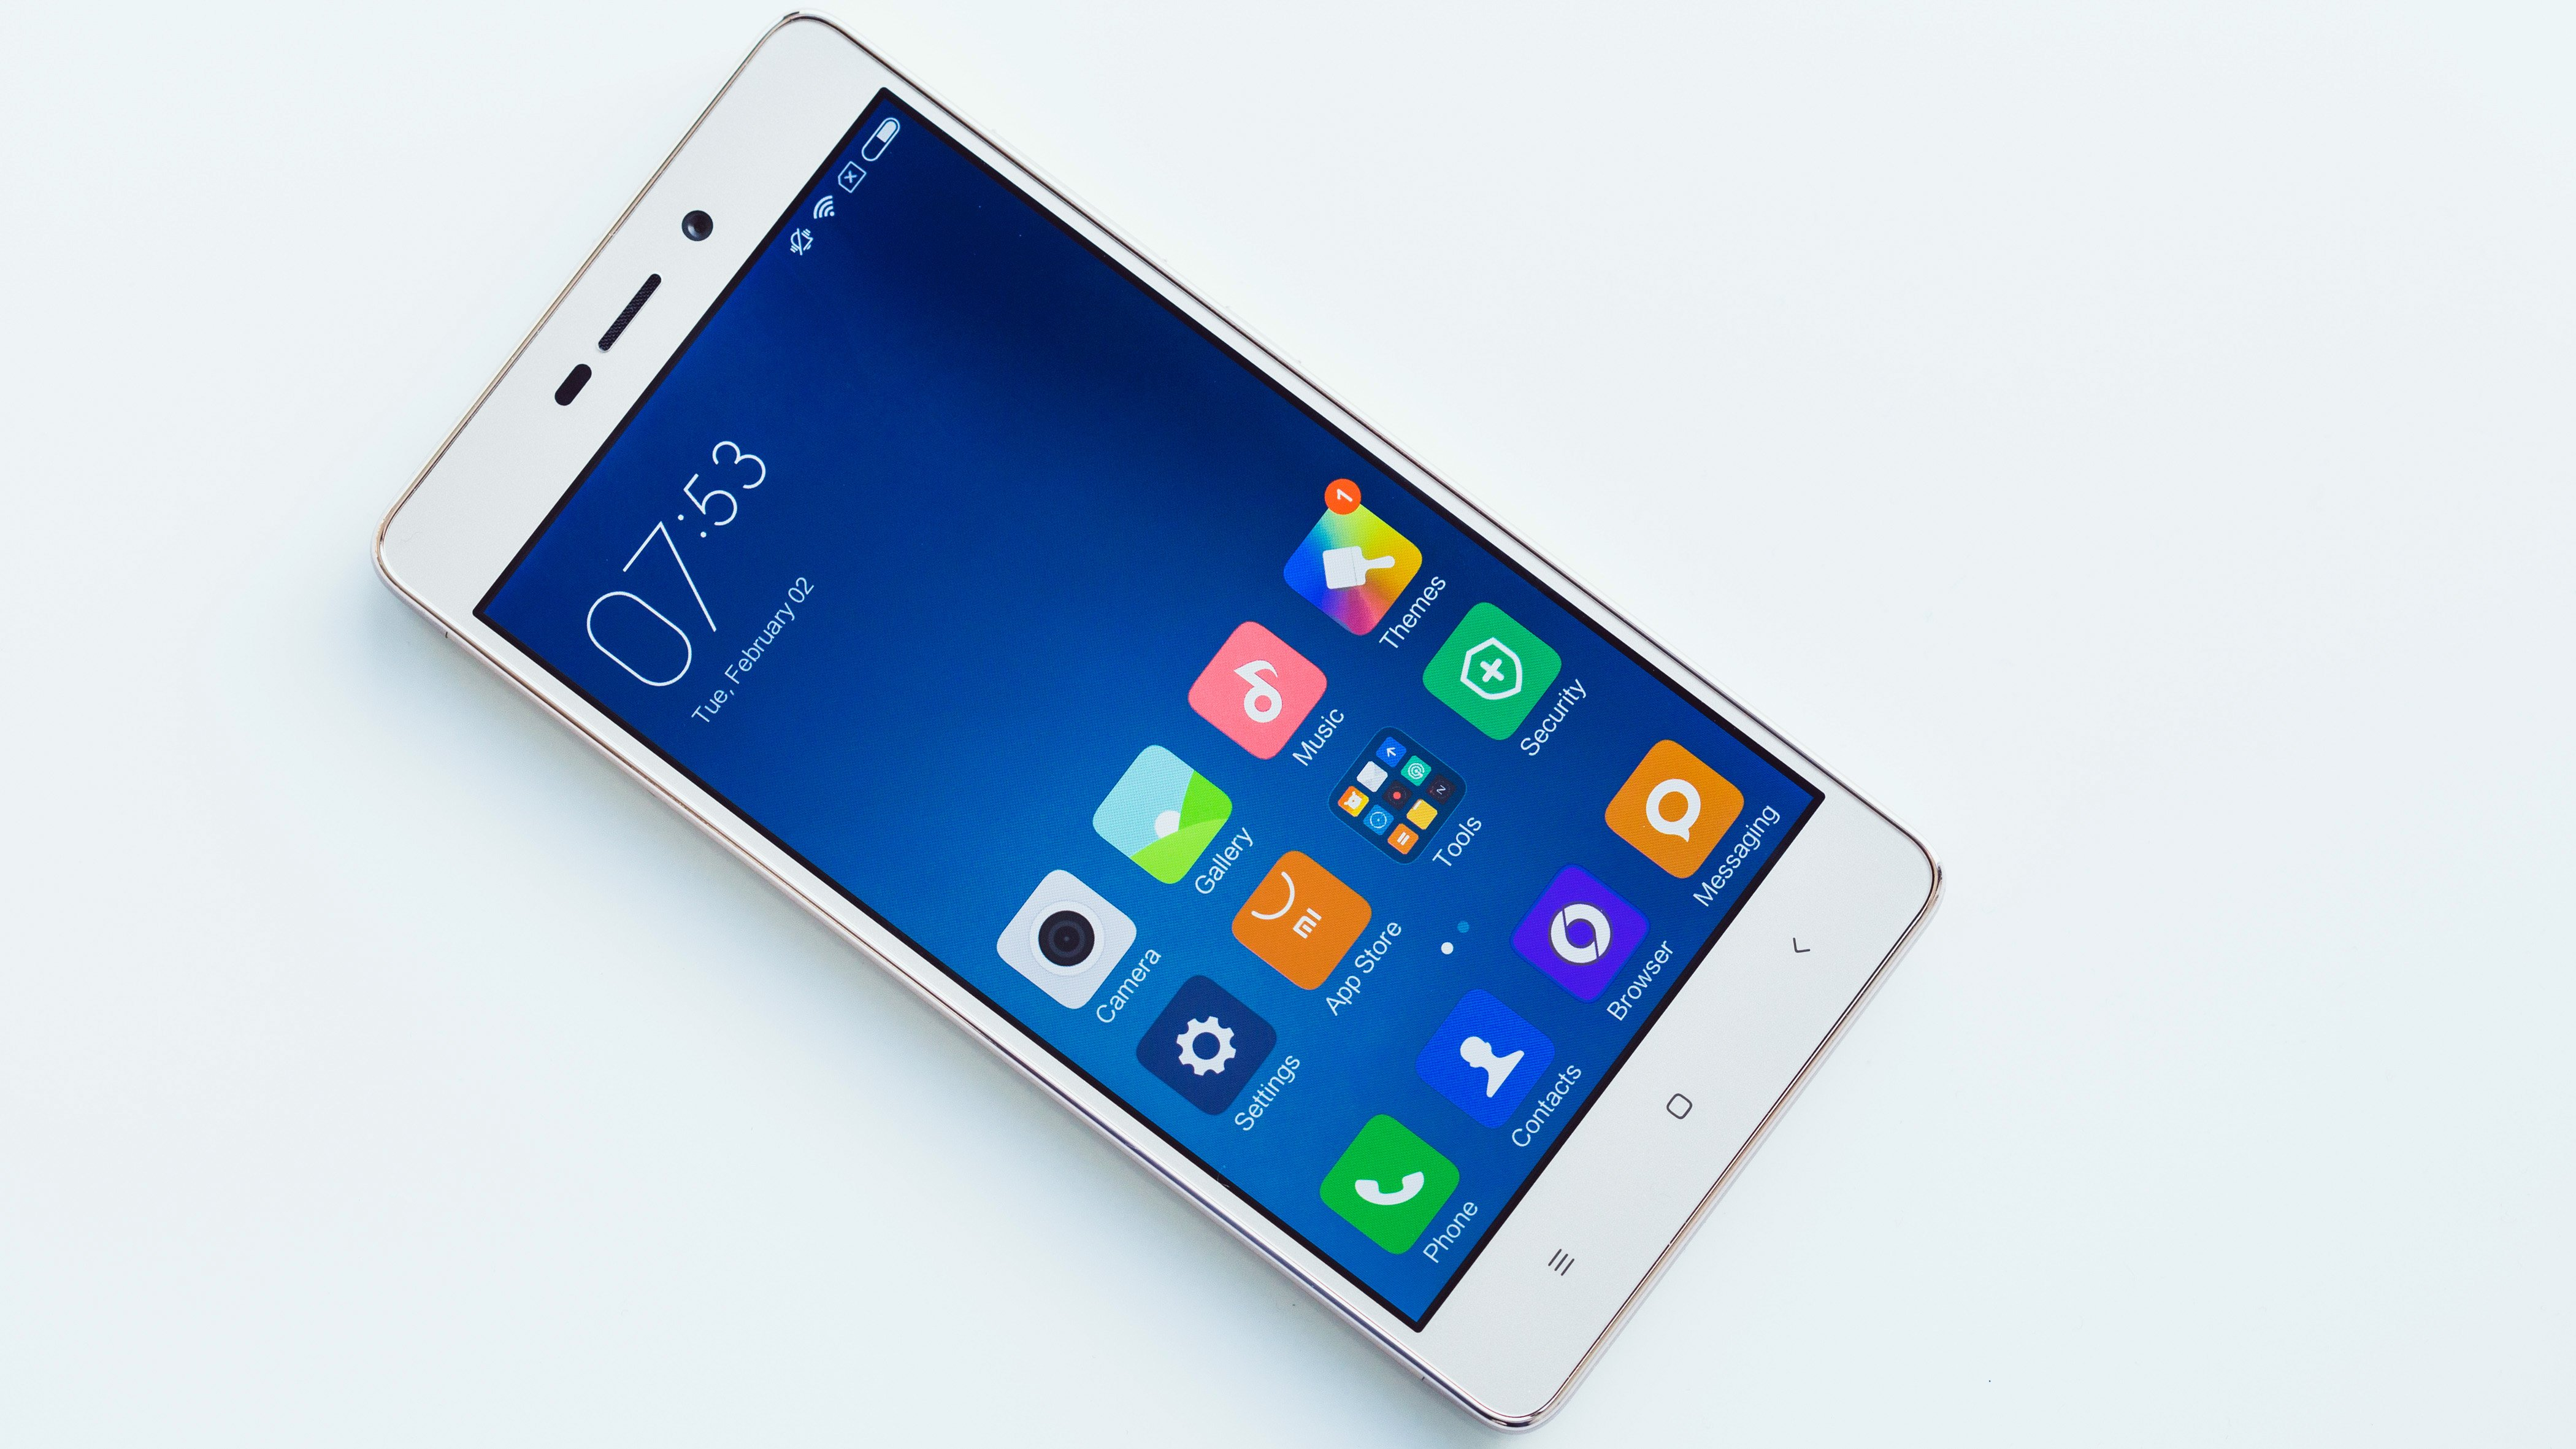 Xiaomi Redmi 3 review: quality at a great price | AndroidPIT